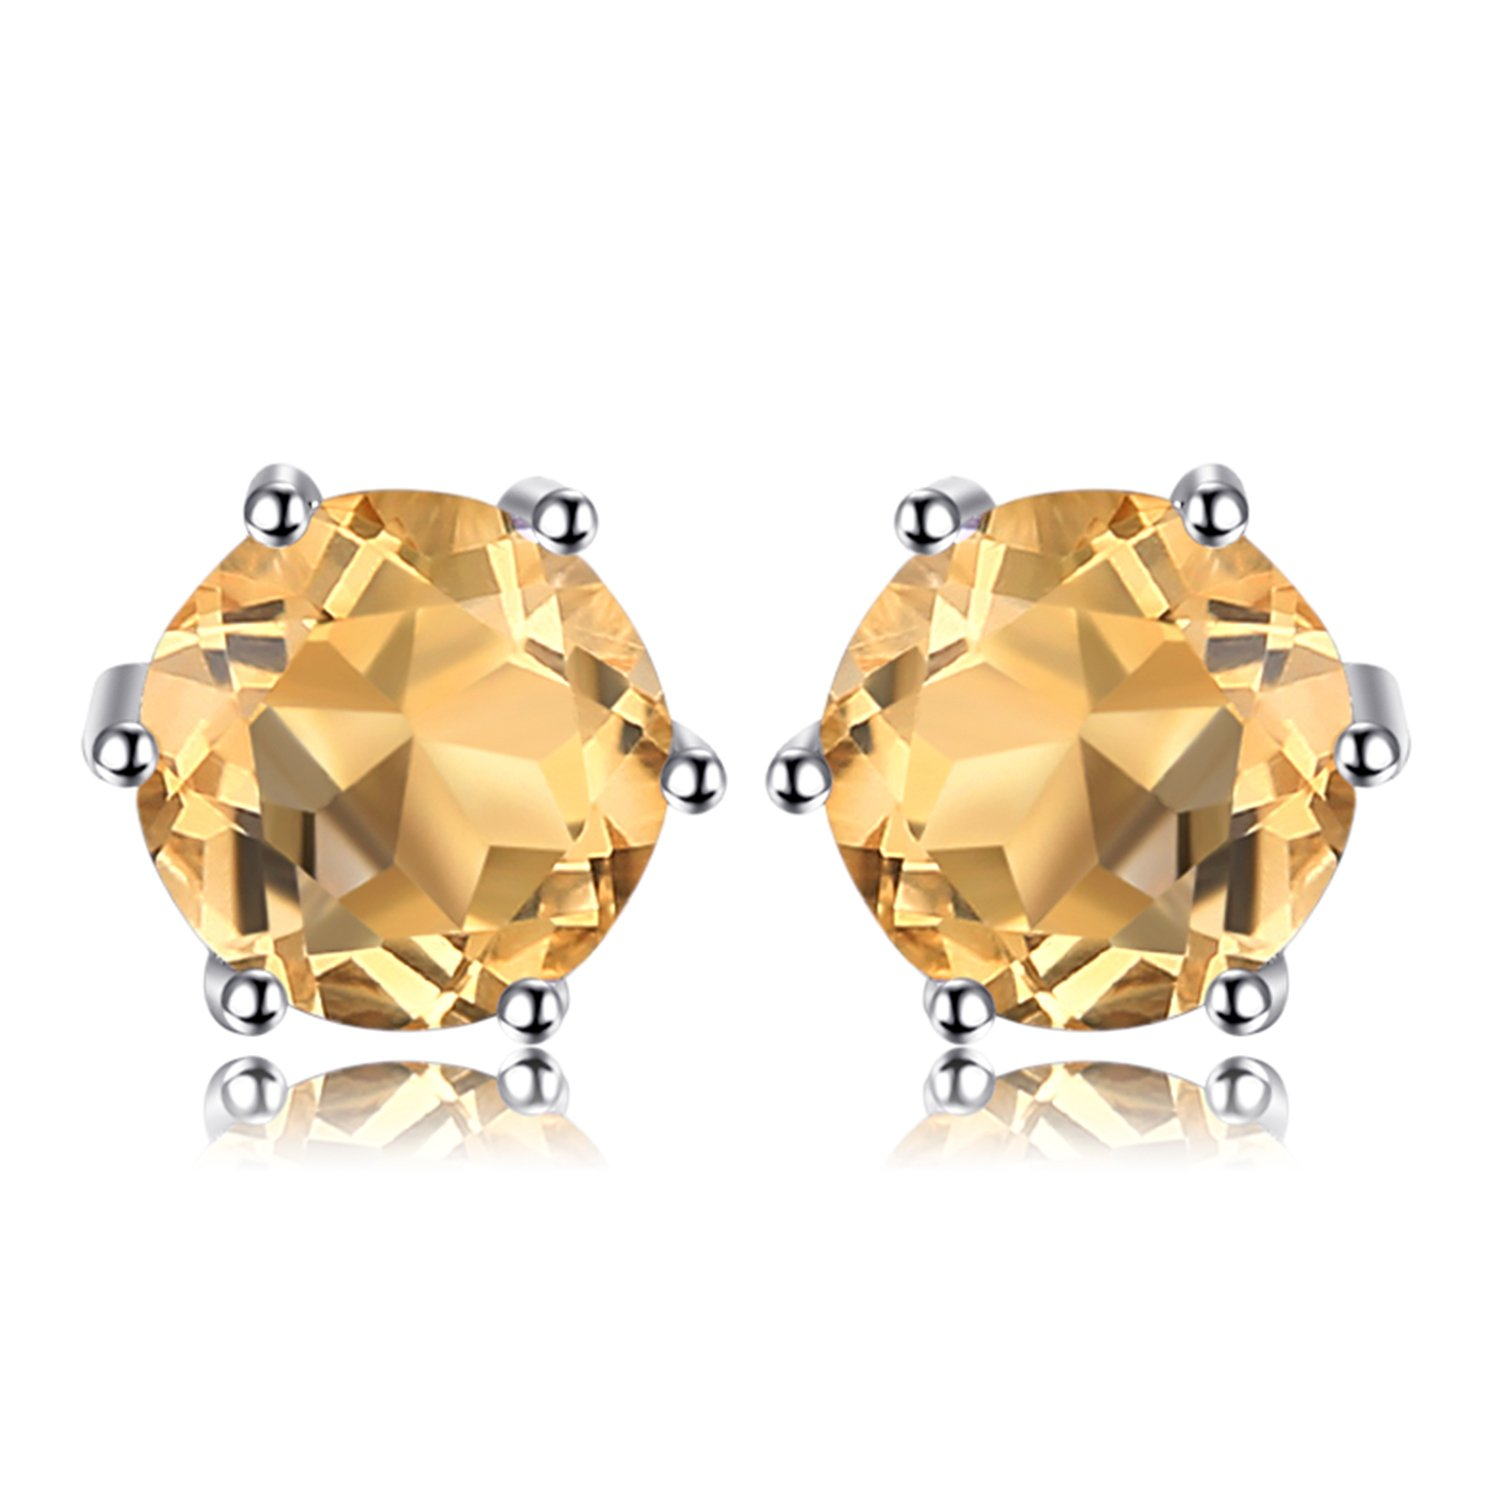 Jewelrypalace Natural Amethyst Citrine Garnet Peridot Topaz 925 Sterling Silver Stud Earrings CA-JE553401